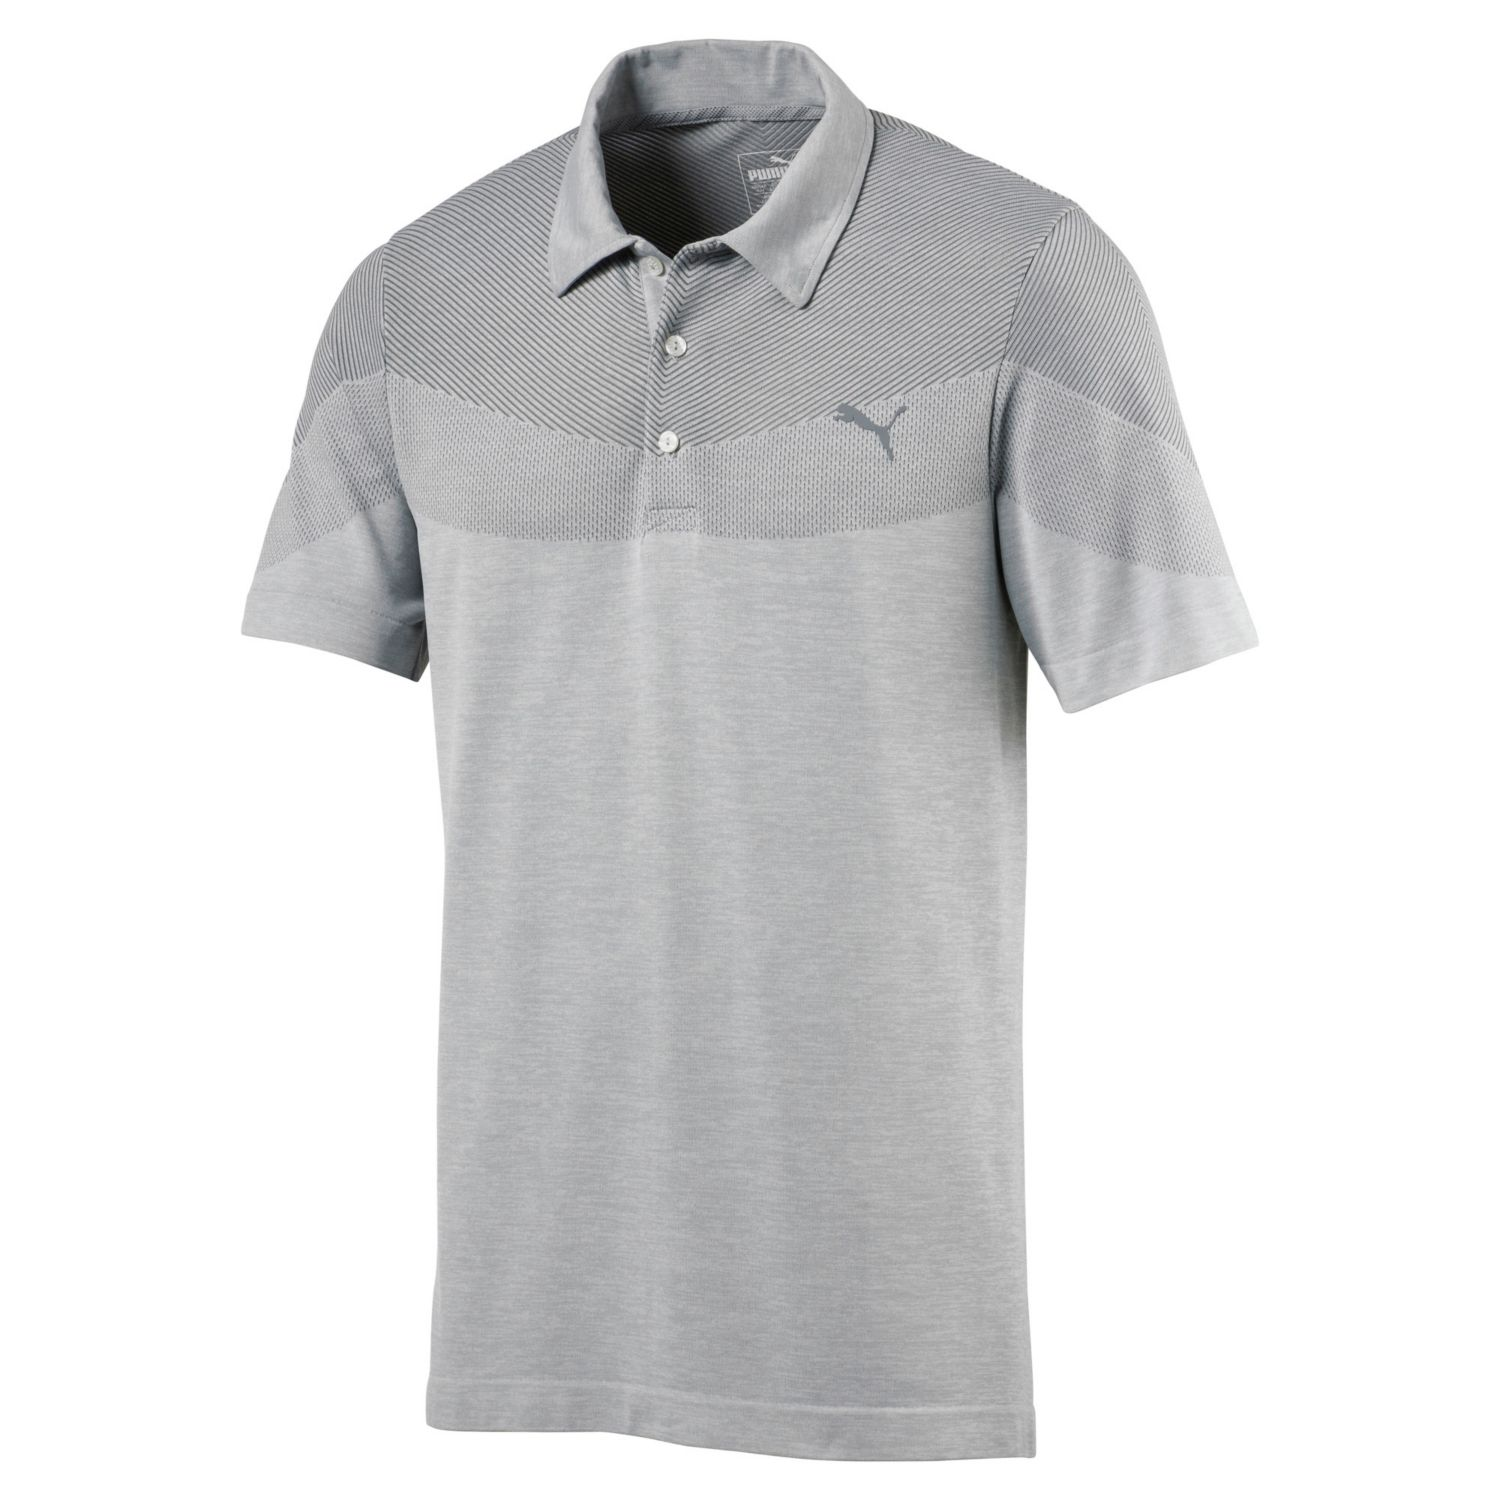 PUMA EVOKNIT SEAMLESS POLO MENS GOLF SHIRT 573283 -NEW 2018- PICK SIZE &  COLOR; Picture 2 of 3; Picture 3 of 3